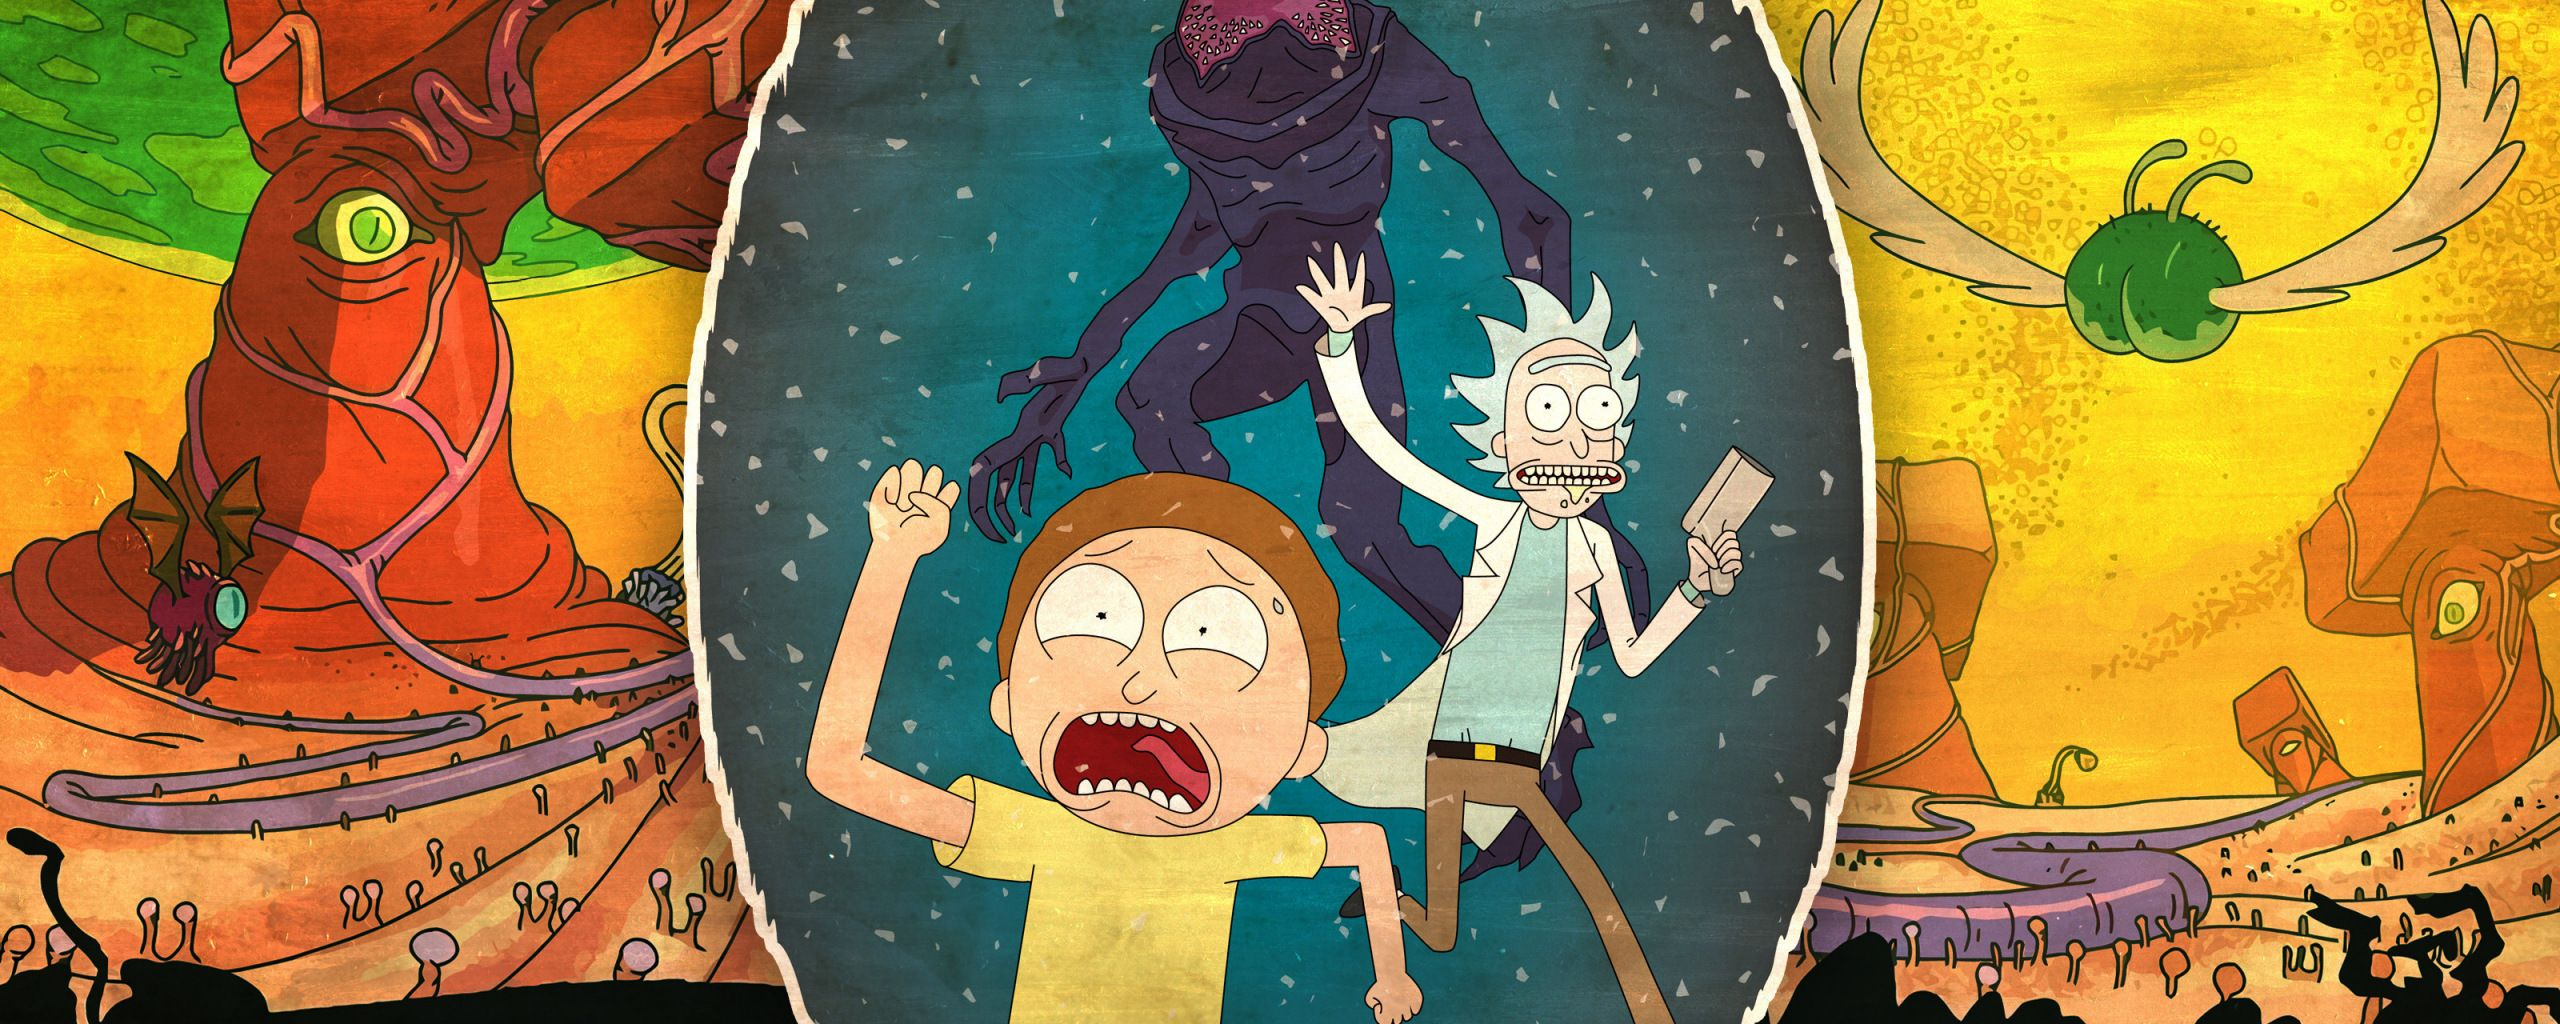 Rick And Morty Dual Screen Wallpapers Top Free Rick And Morty